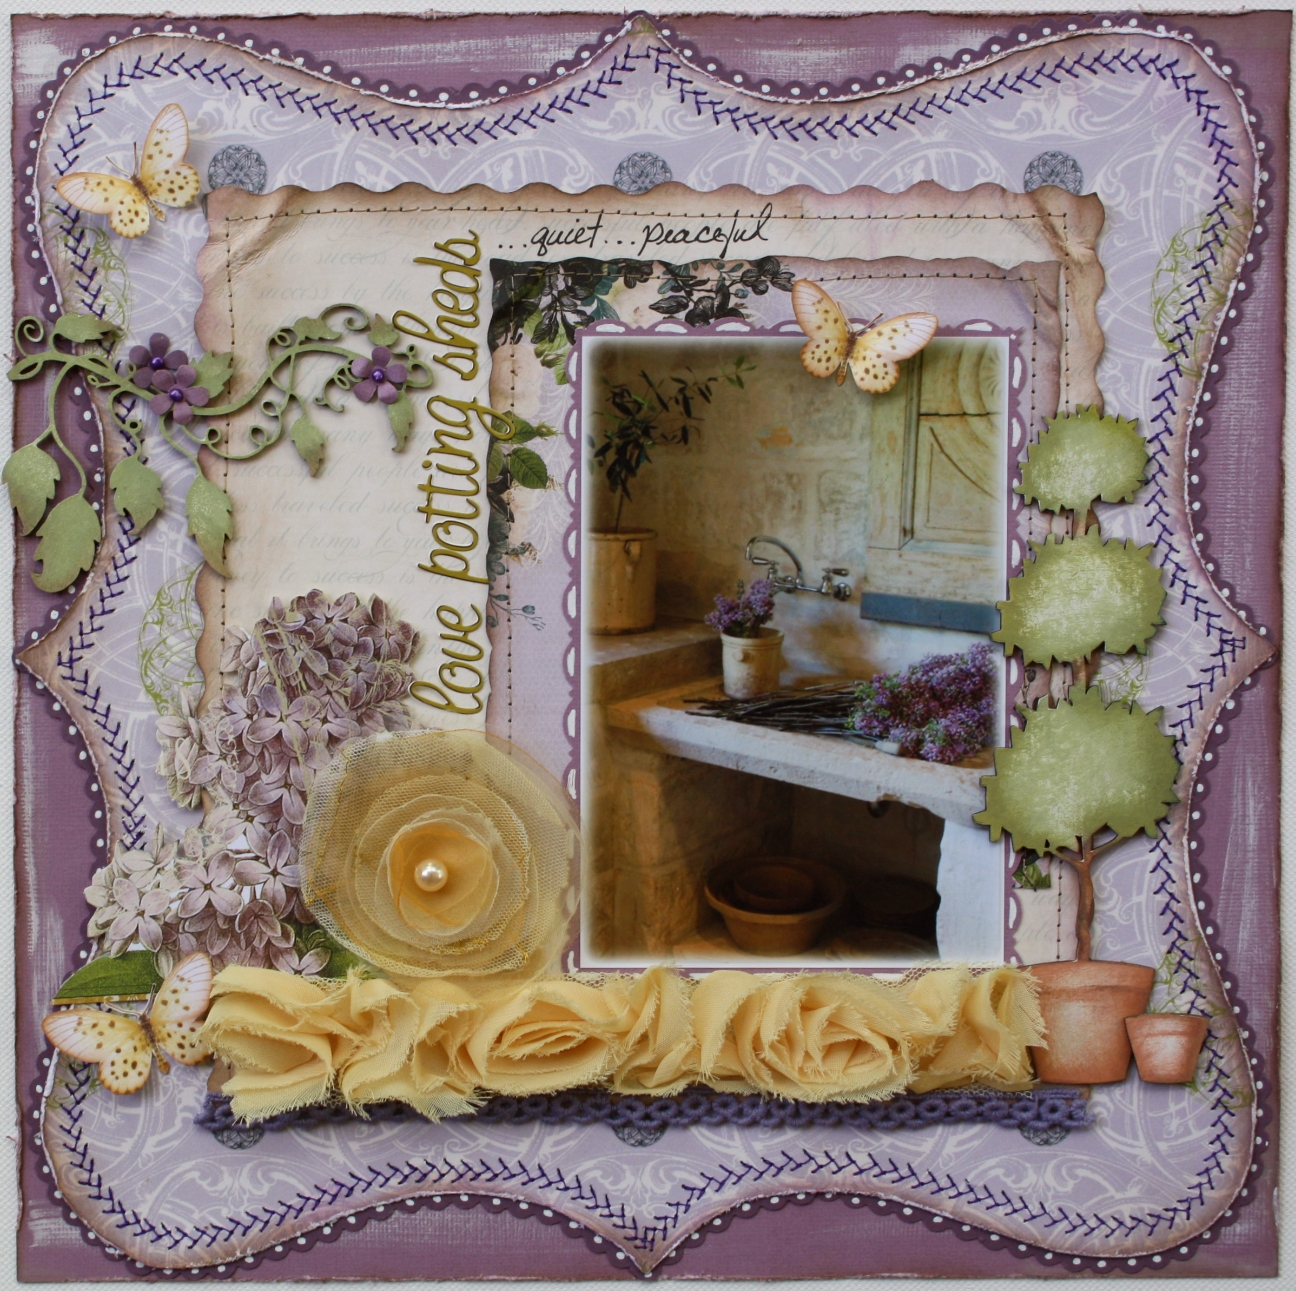 17 Lively Shabby Chic Garden Designs That Will Relax And: Such A Pretty Mess: Websters Pages & Dusty Attic Page :